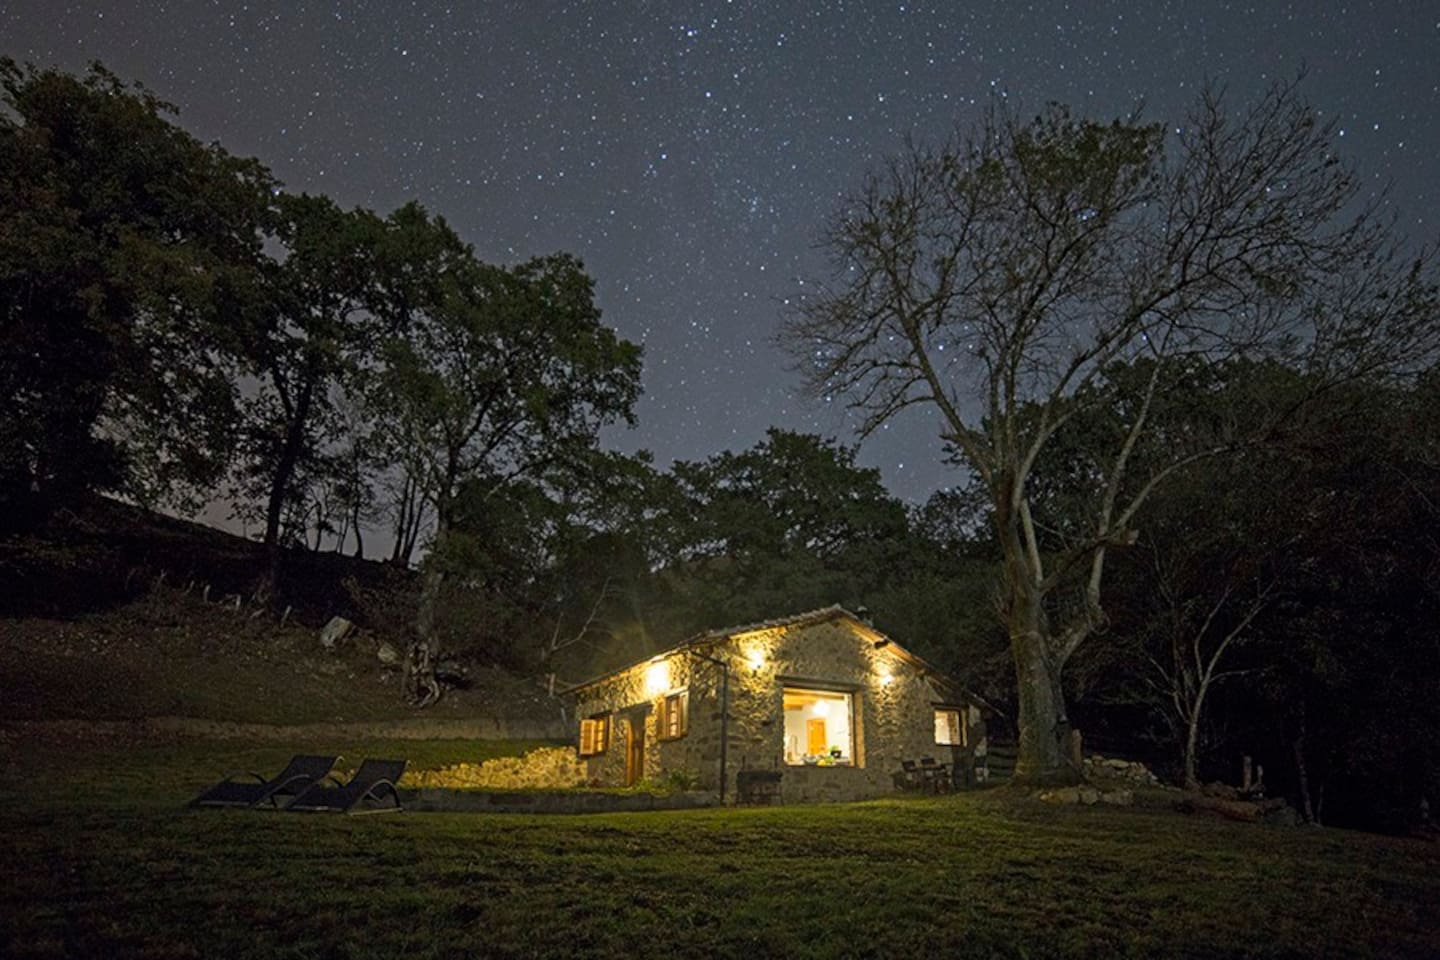 El Bosque cabin is located in a truly magical spot where nature opens up to you and takes you in...